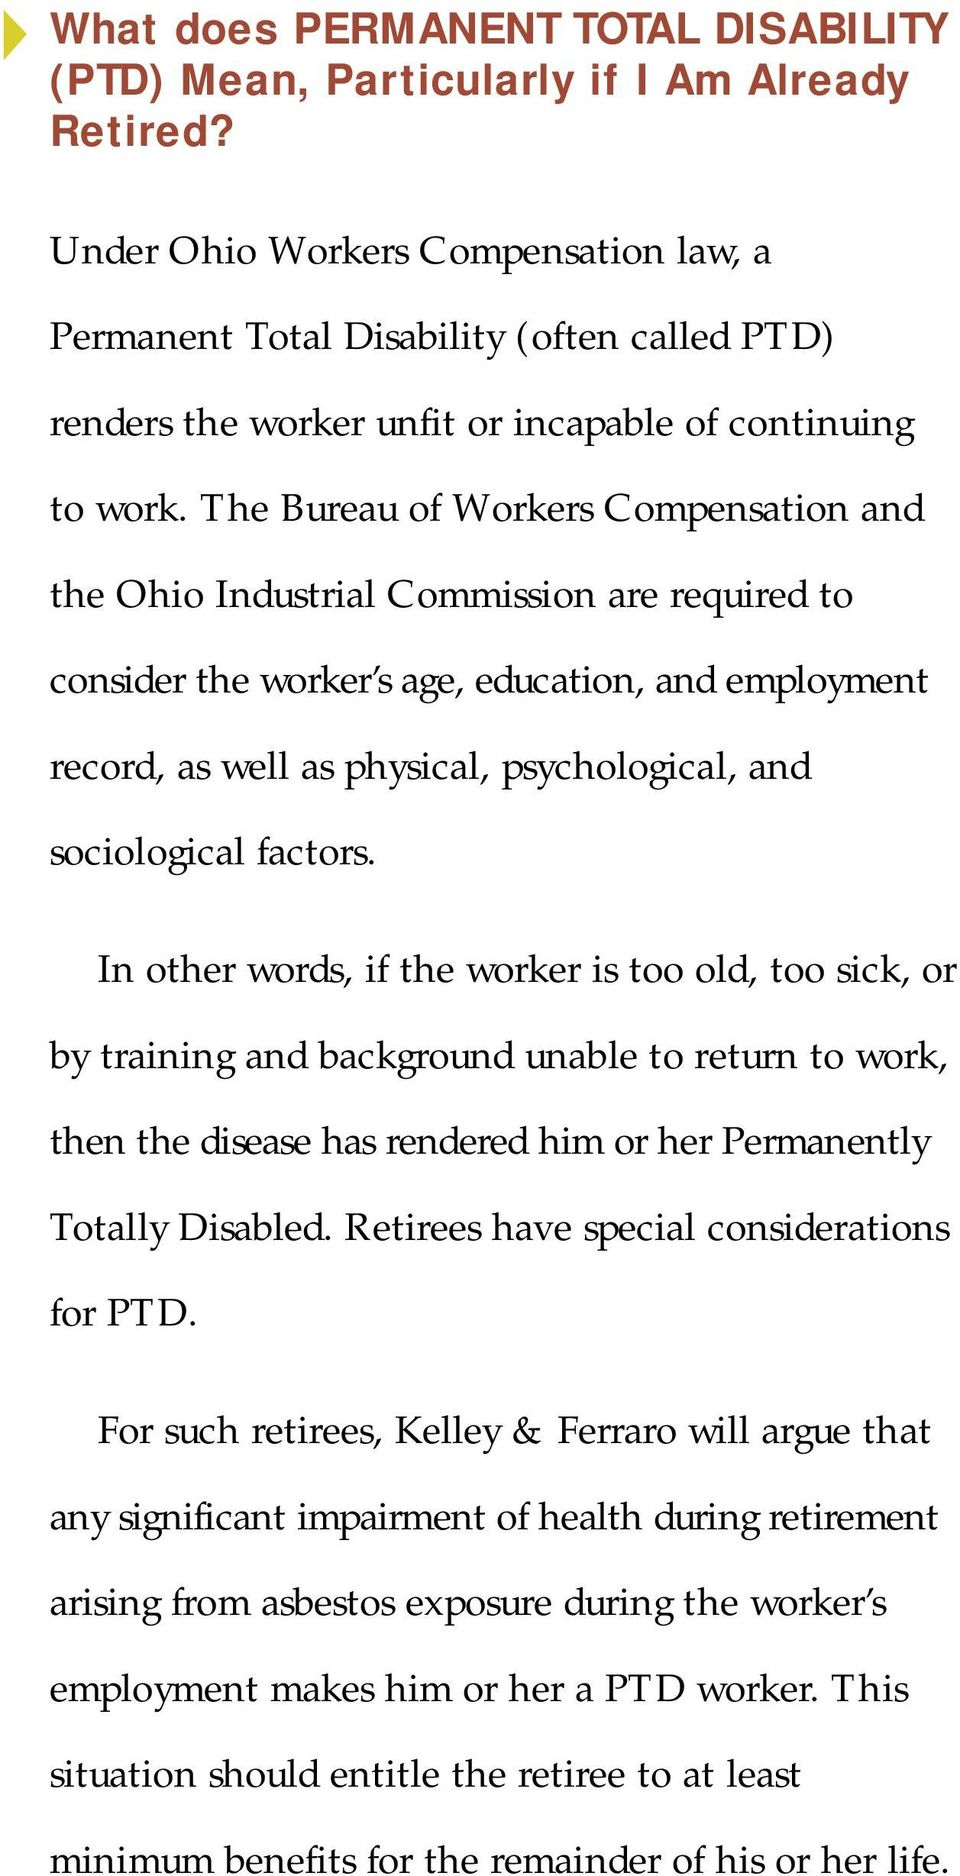 The Bureau of Workers Compensation and the Ohio Industrial Commission are required to consider the worker s age, education, and employment record, as well as physical, psychological, and sociological